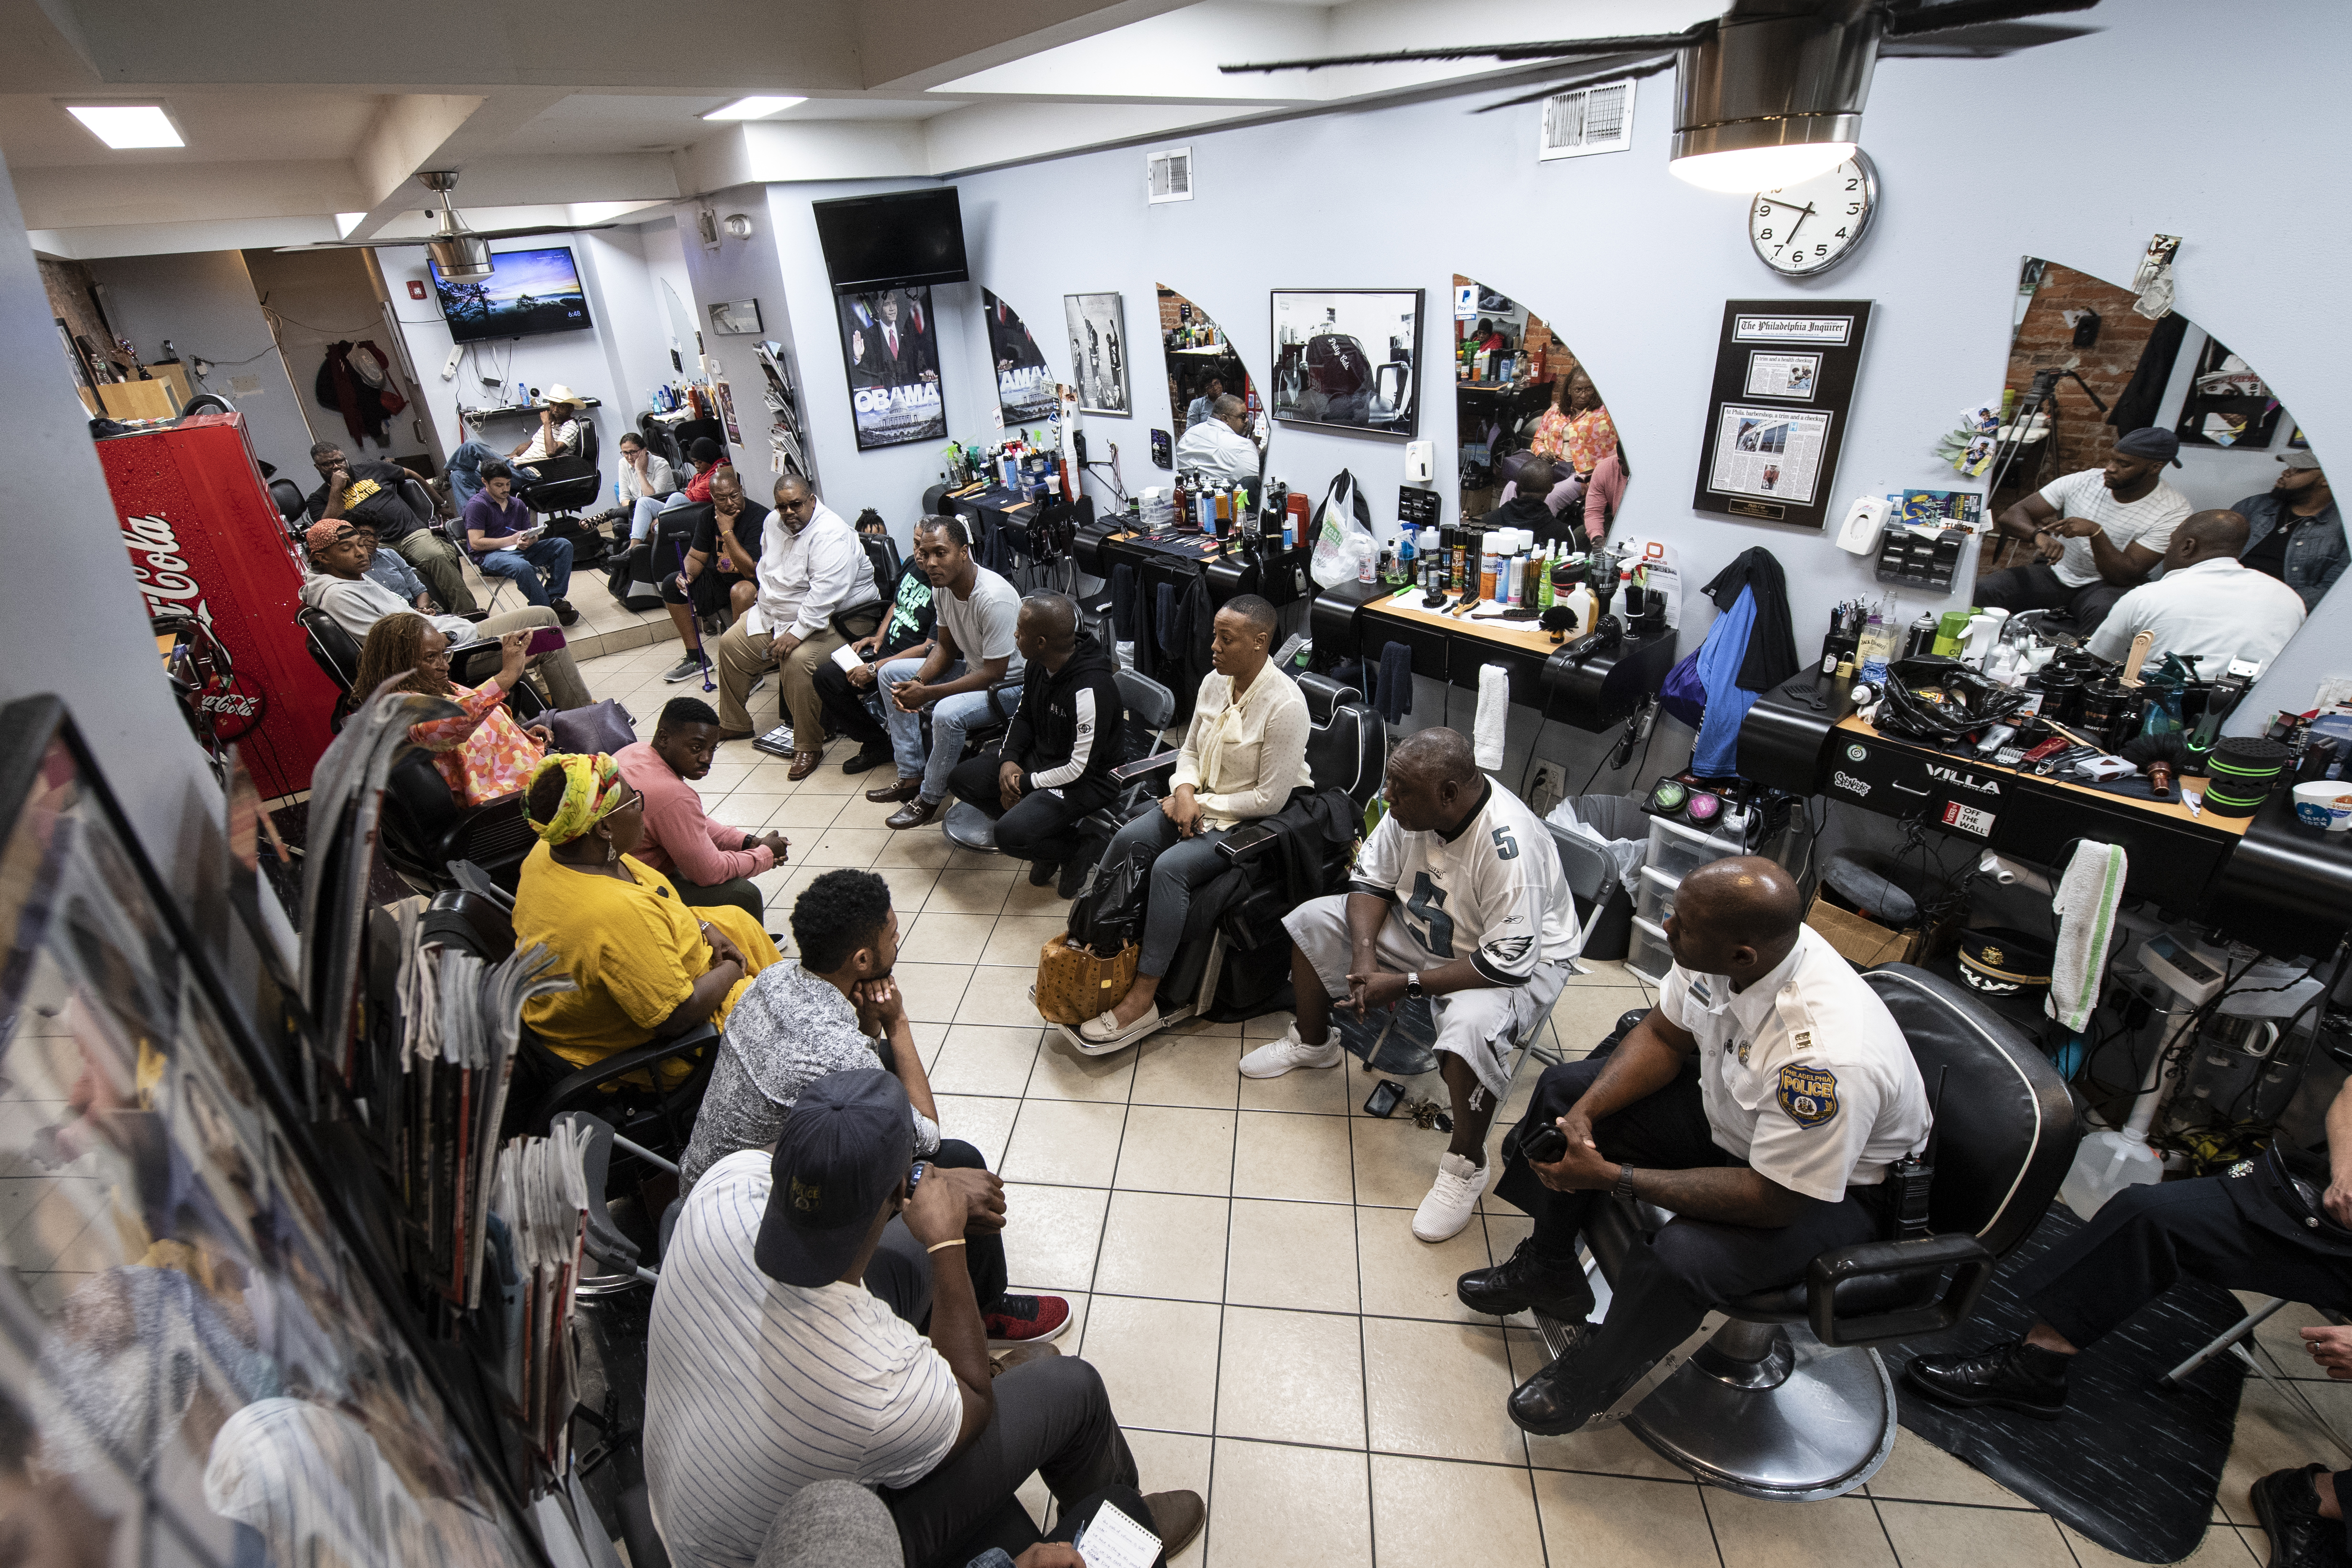 """Philadelphia Police and residents gather during a meeting called """"Blades, Fades, and Engage"""" at the Philly Cuts barbershop in Philadelphia, Pa. Monday, September 17, 2018. Stewart, organized the event at a West Philly barbershop where members of the community have an opportunity to chat directly with police officers. JOSE F. MORENO / Staff Photographer."""